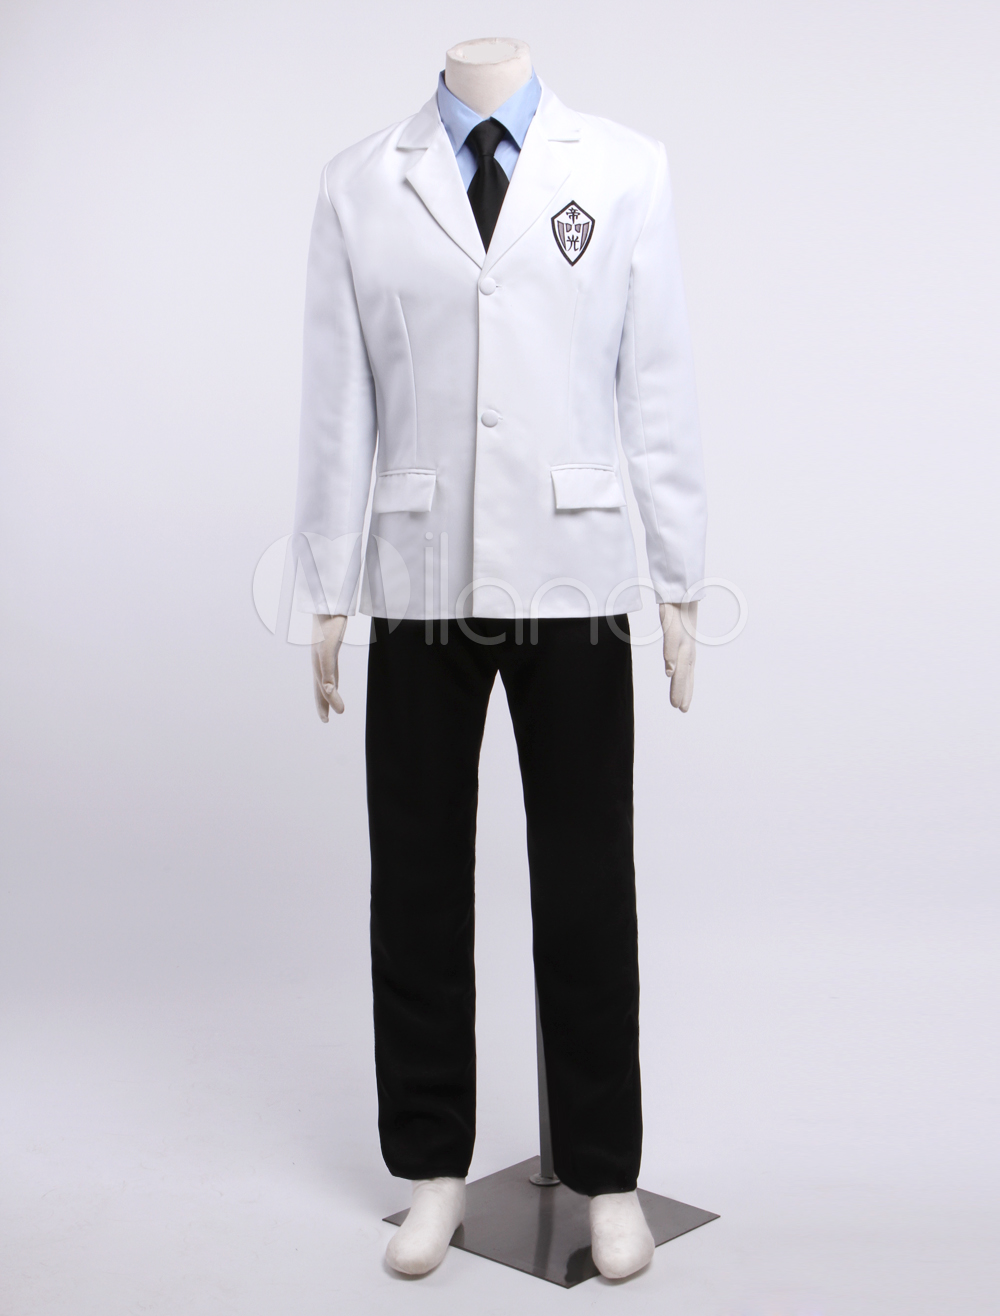 Buy Stylish Kuroko No Basketball School Uniform Anime Cosplay Costume Halloween for $88.99 in Milanoo store